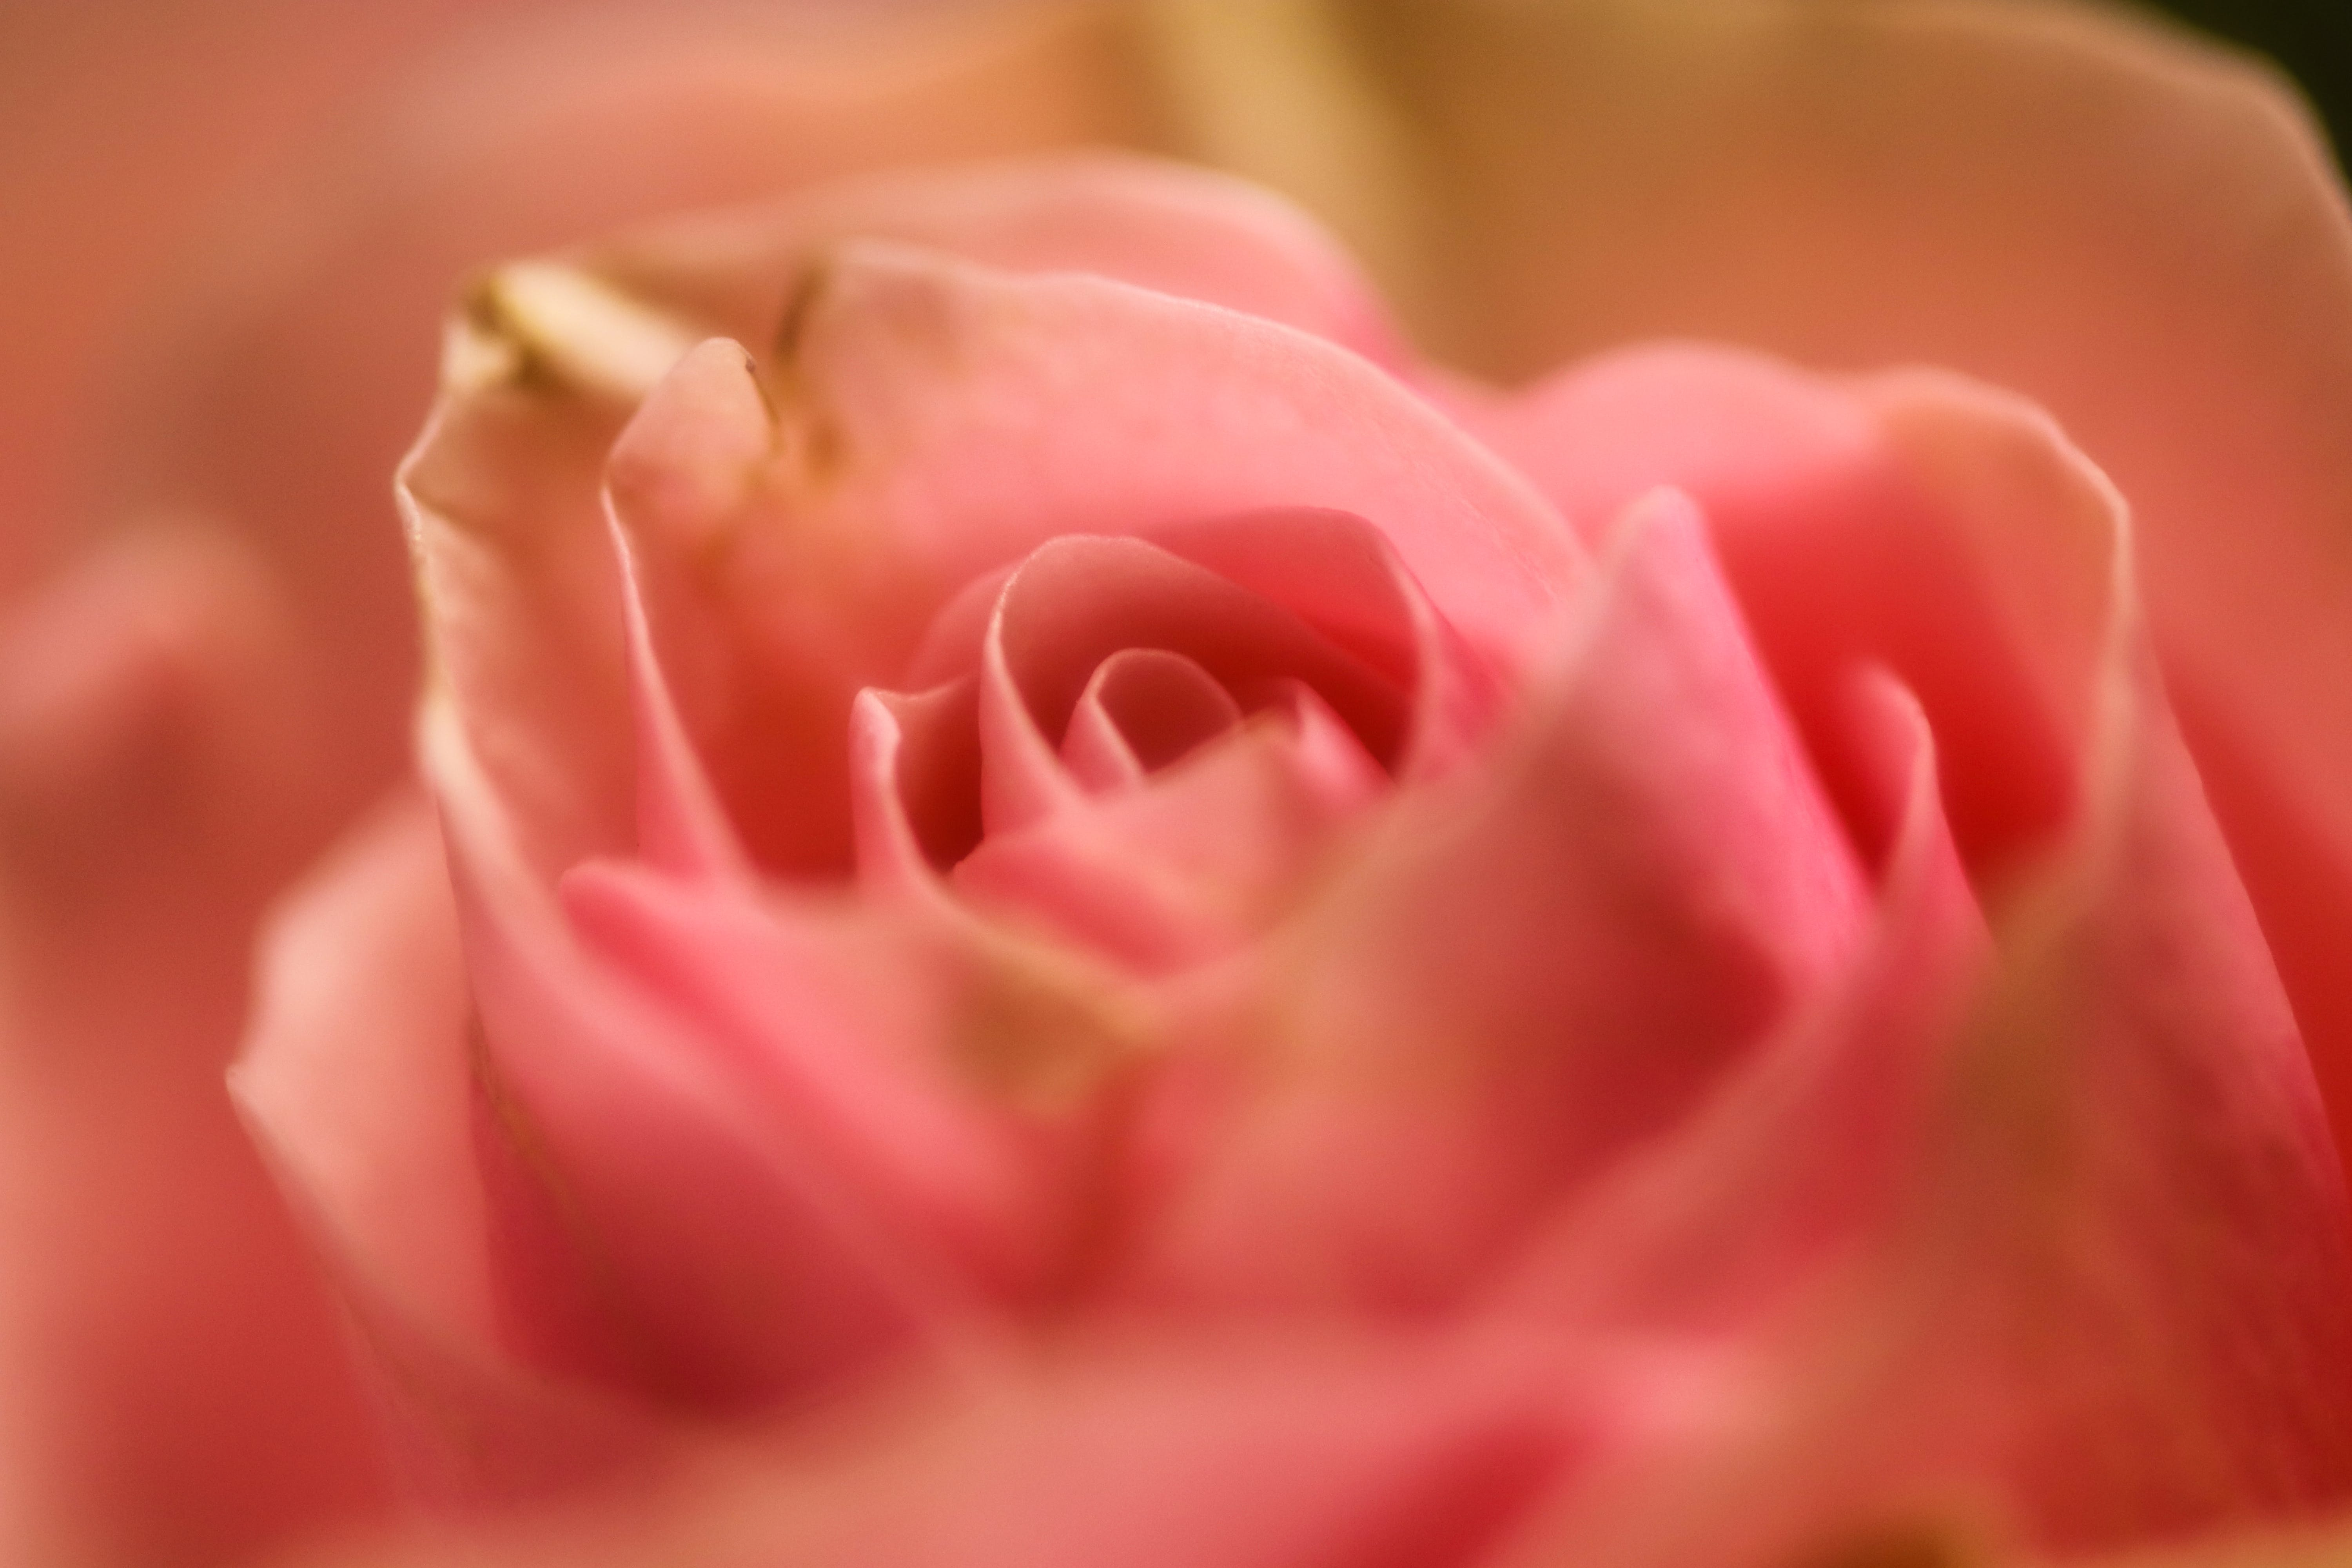 Free stock photo of #rose #love #valentine #pink